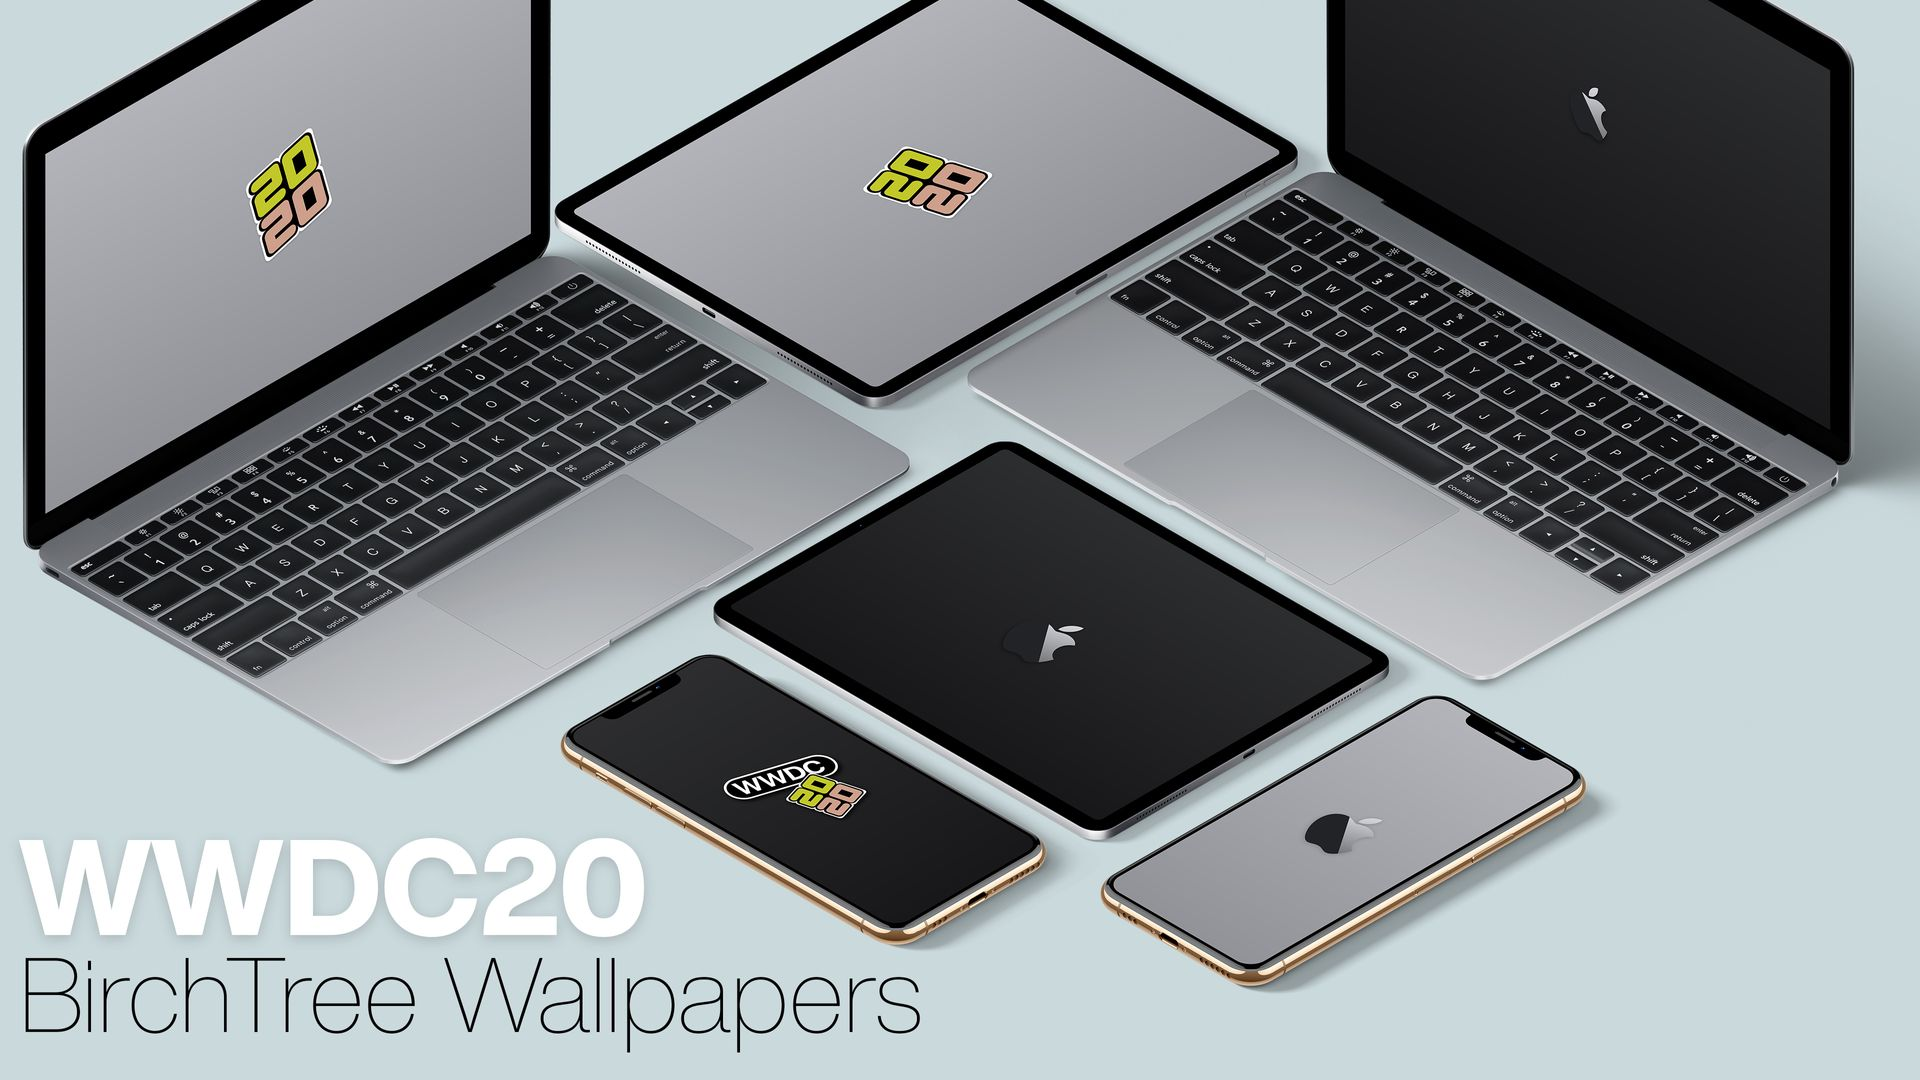 WWDC20 Wallpapers for iPhone, iPad, and Mac